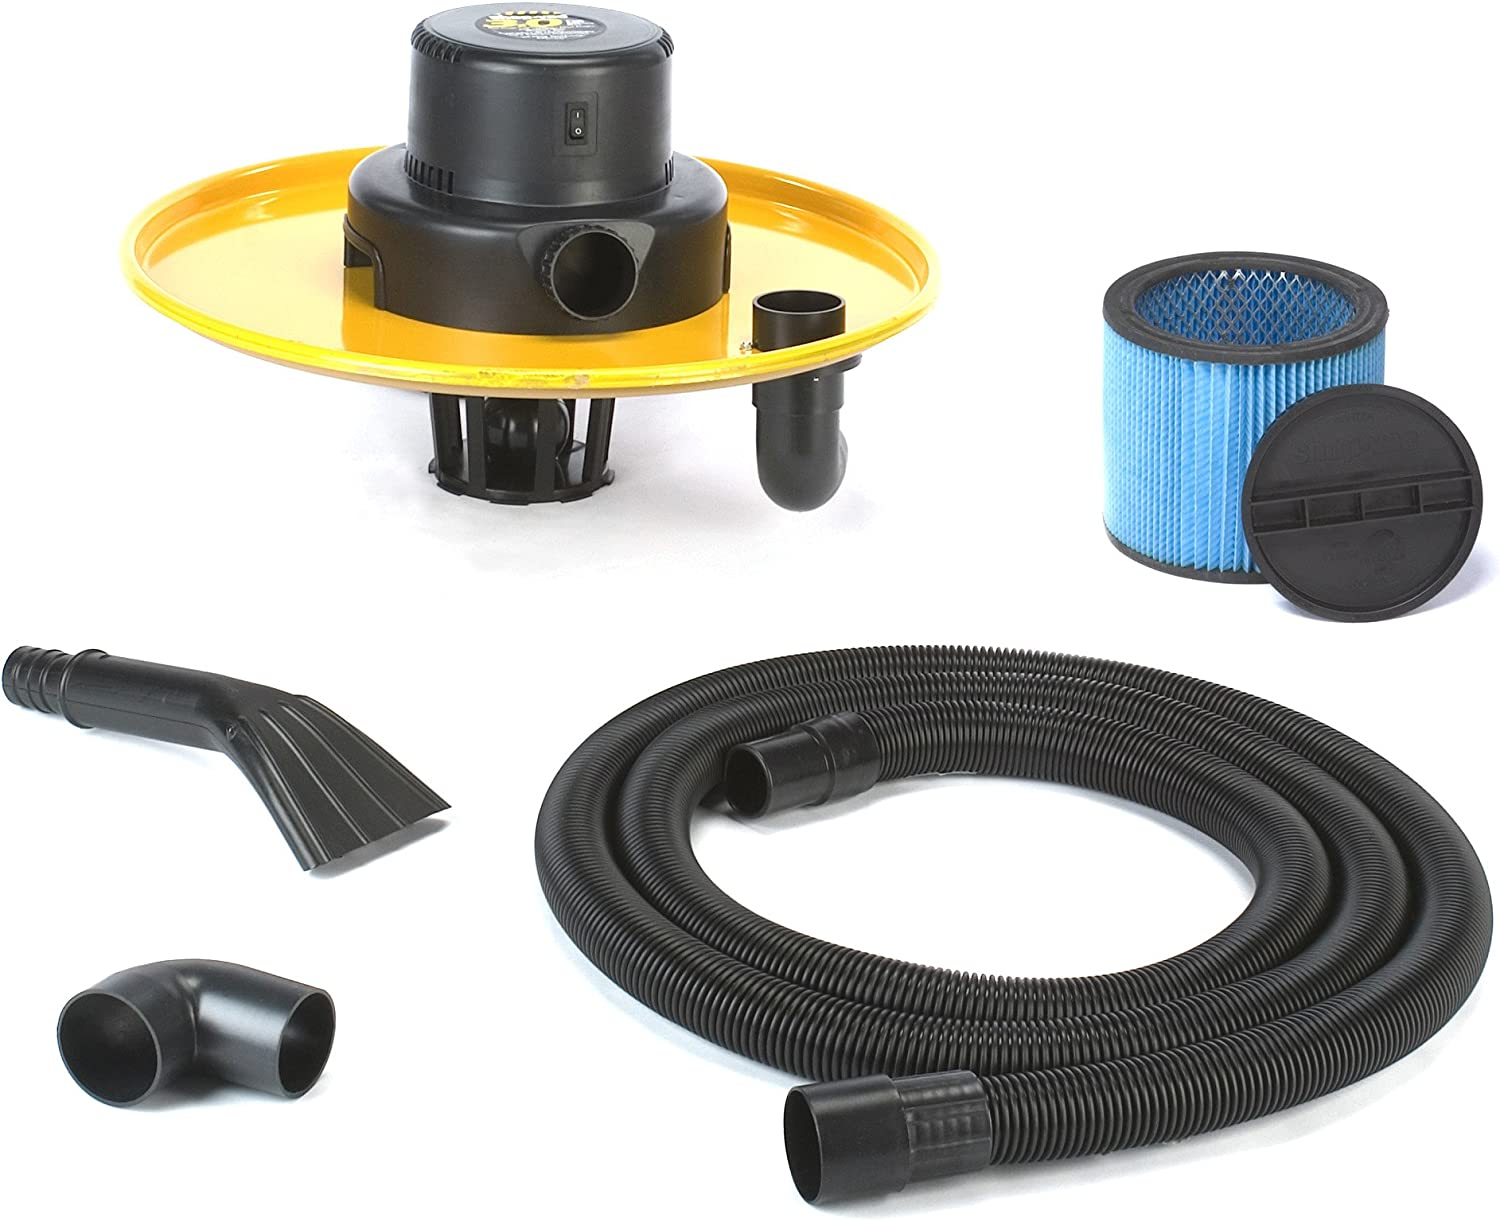 Shop-Vac 9700610 Genuine 3.0-Peak Horsepower Industrial Head Assembly 55-Gallon Powerful 2-Stage Motor Conversion Kit with Accessories Type X Cartridge Filter